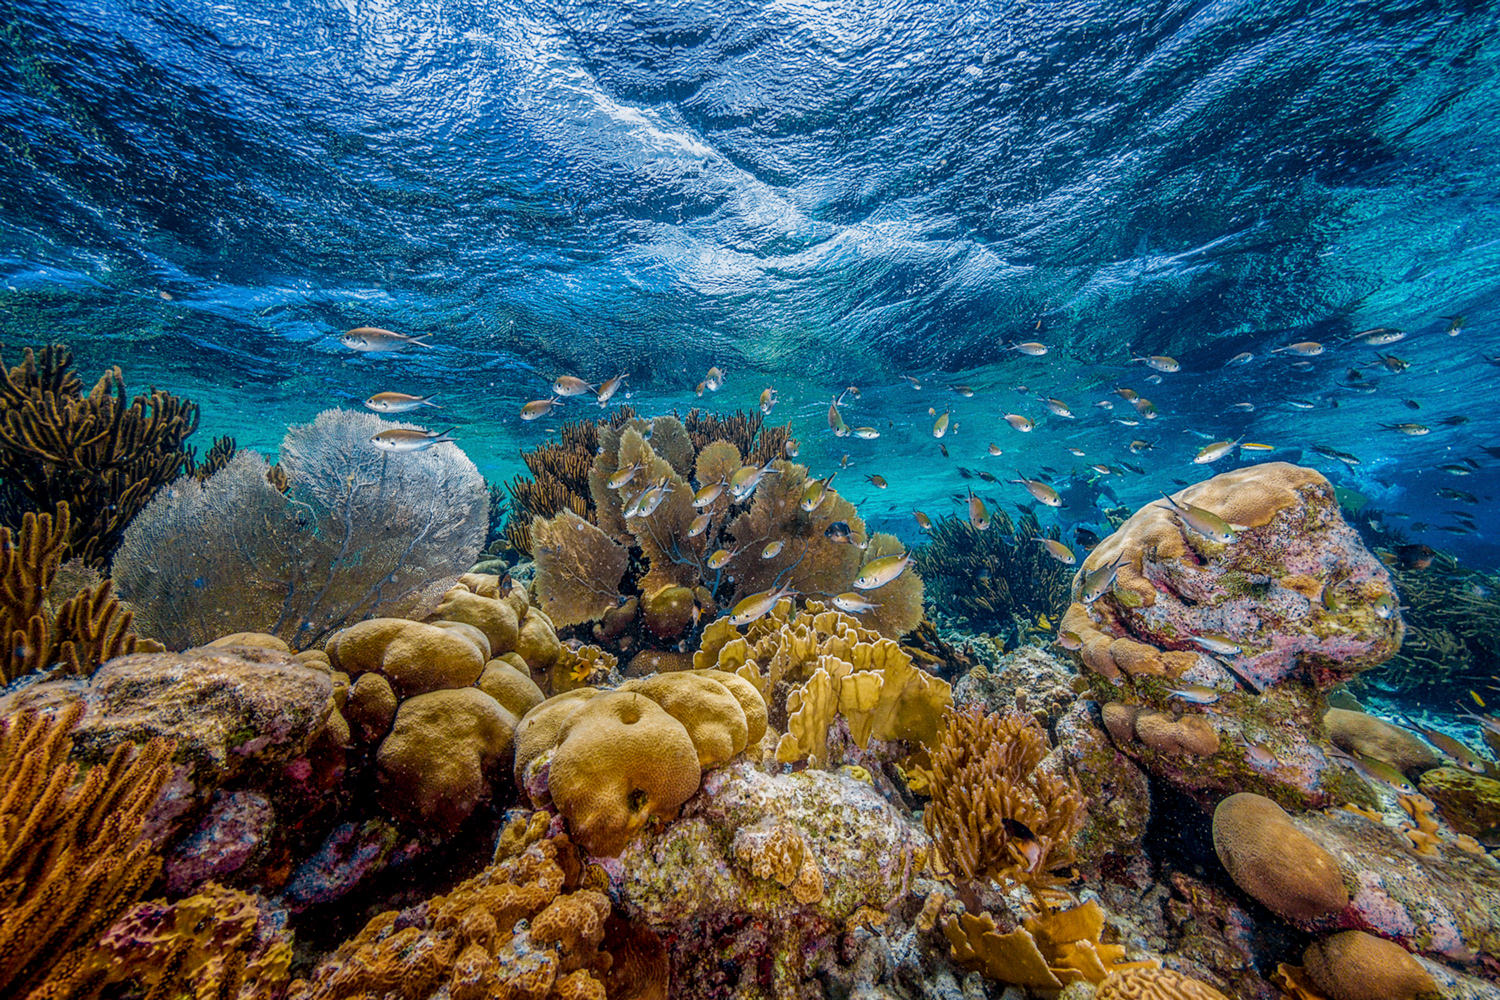 tropical fish swim among sponge coral, reef fans and other coral reef species in clear blue water.